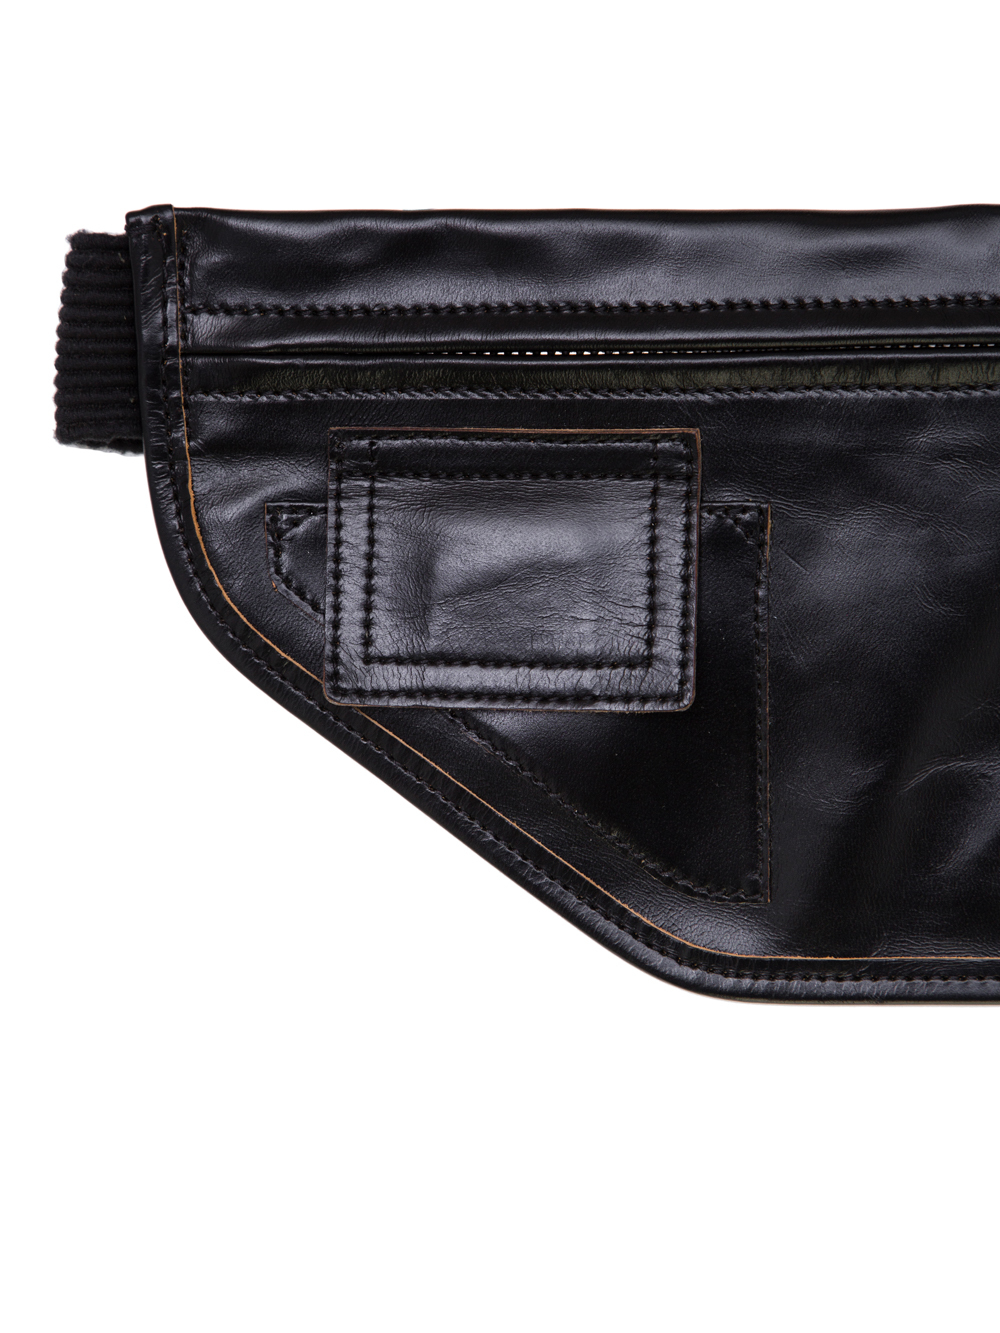 RICK OWENS SS19 BABEL MONEY BELT IN BLACK LEATHER